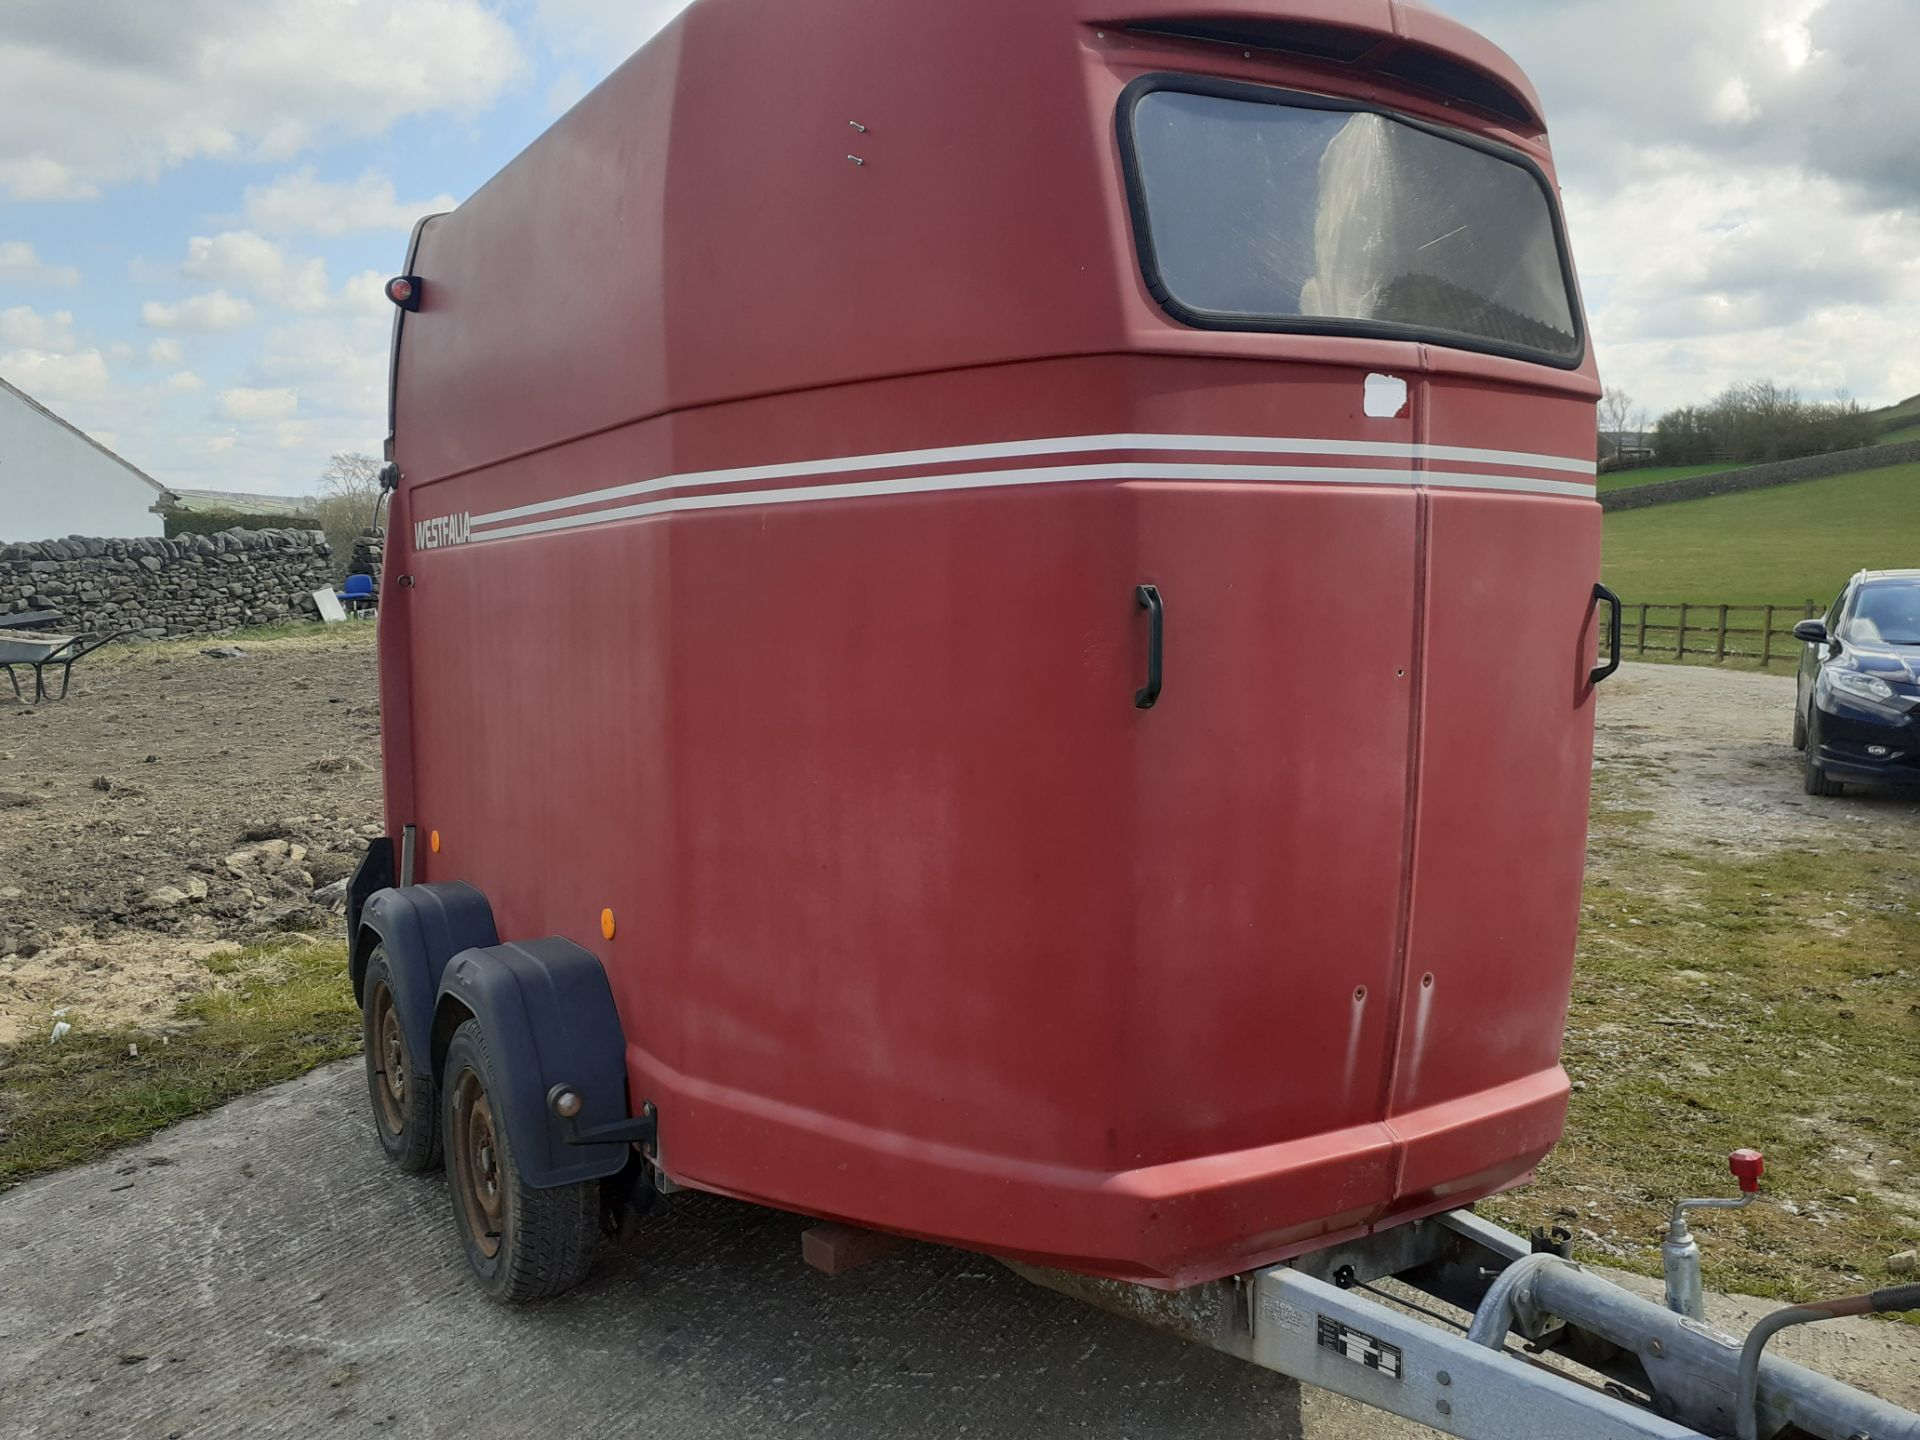 VERY RARE WESTFALIA HORSEBOX TRAILER, MADE IN GERMANY, TOWS AS IT SHOULD *NO VAT* - Image 3 of 4